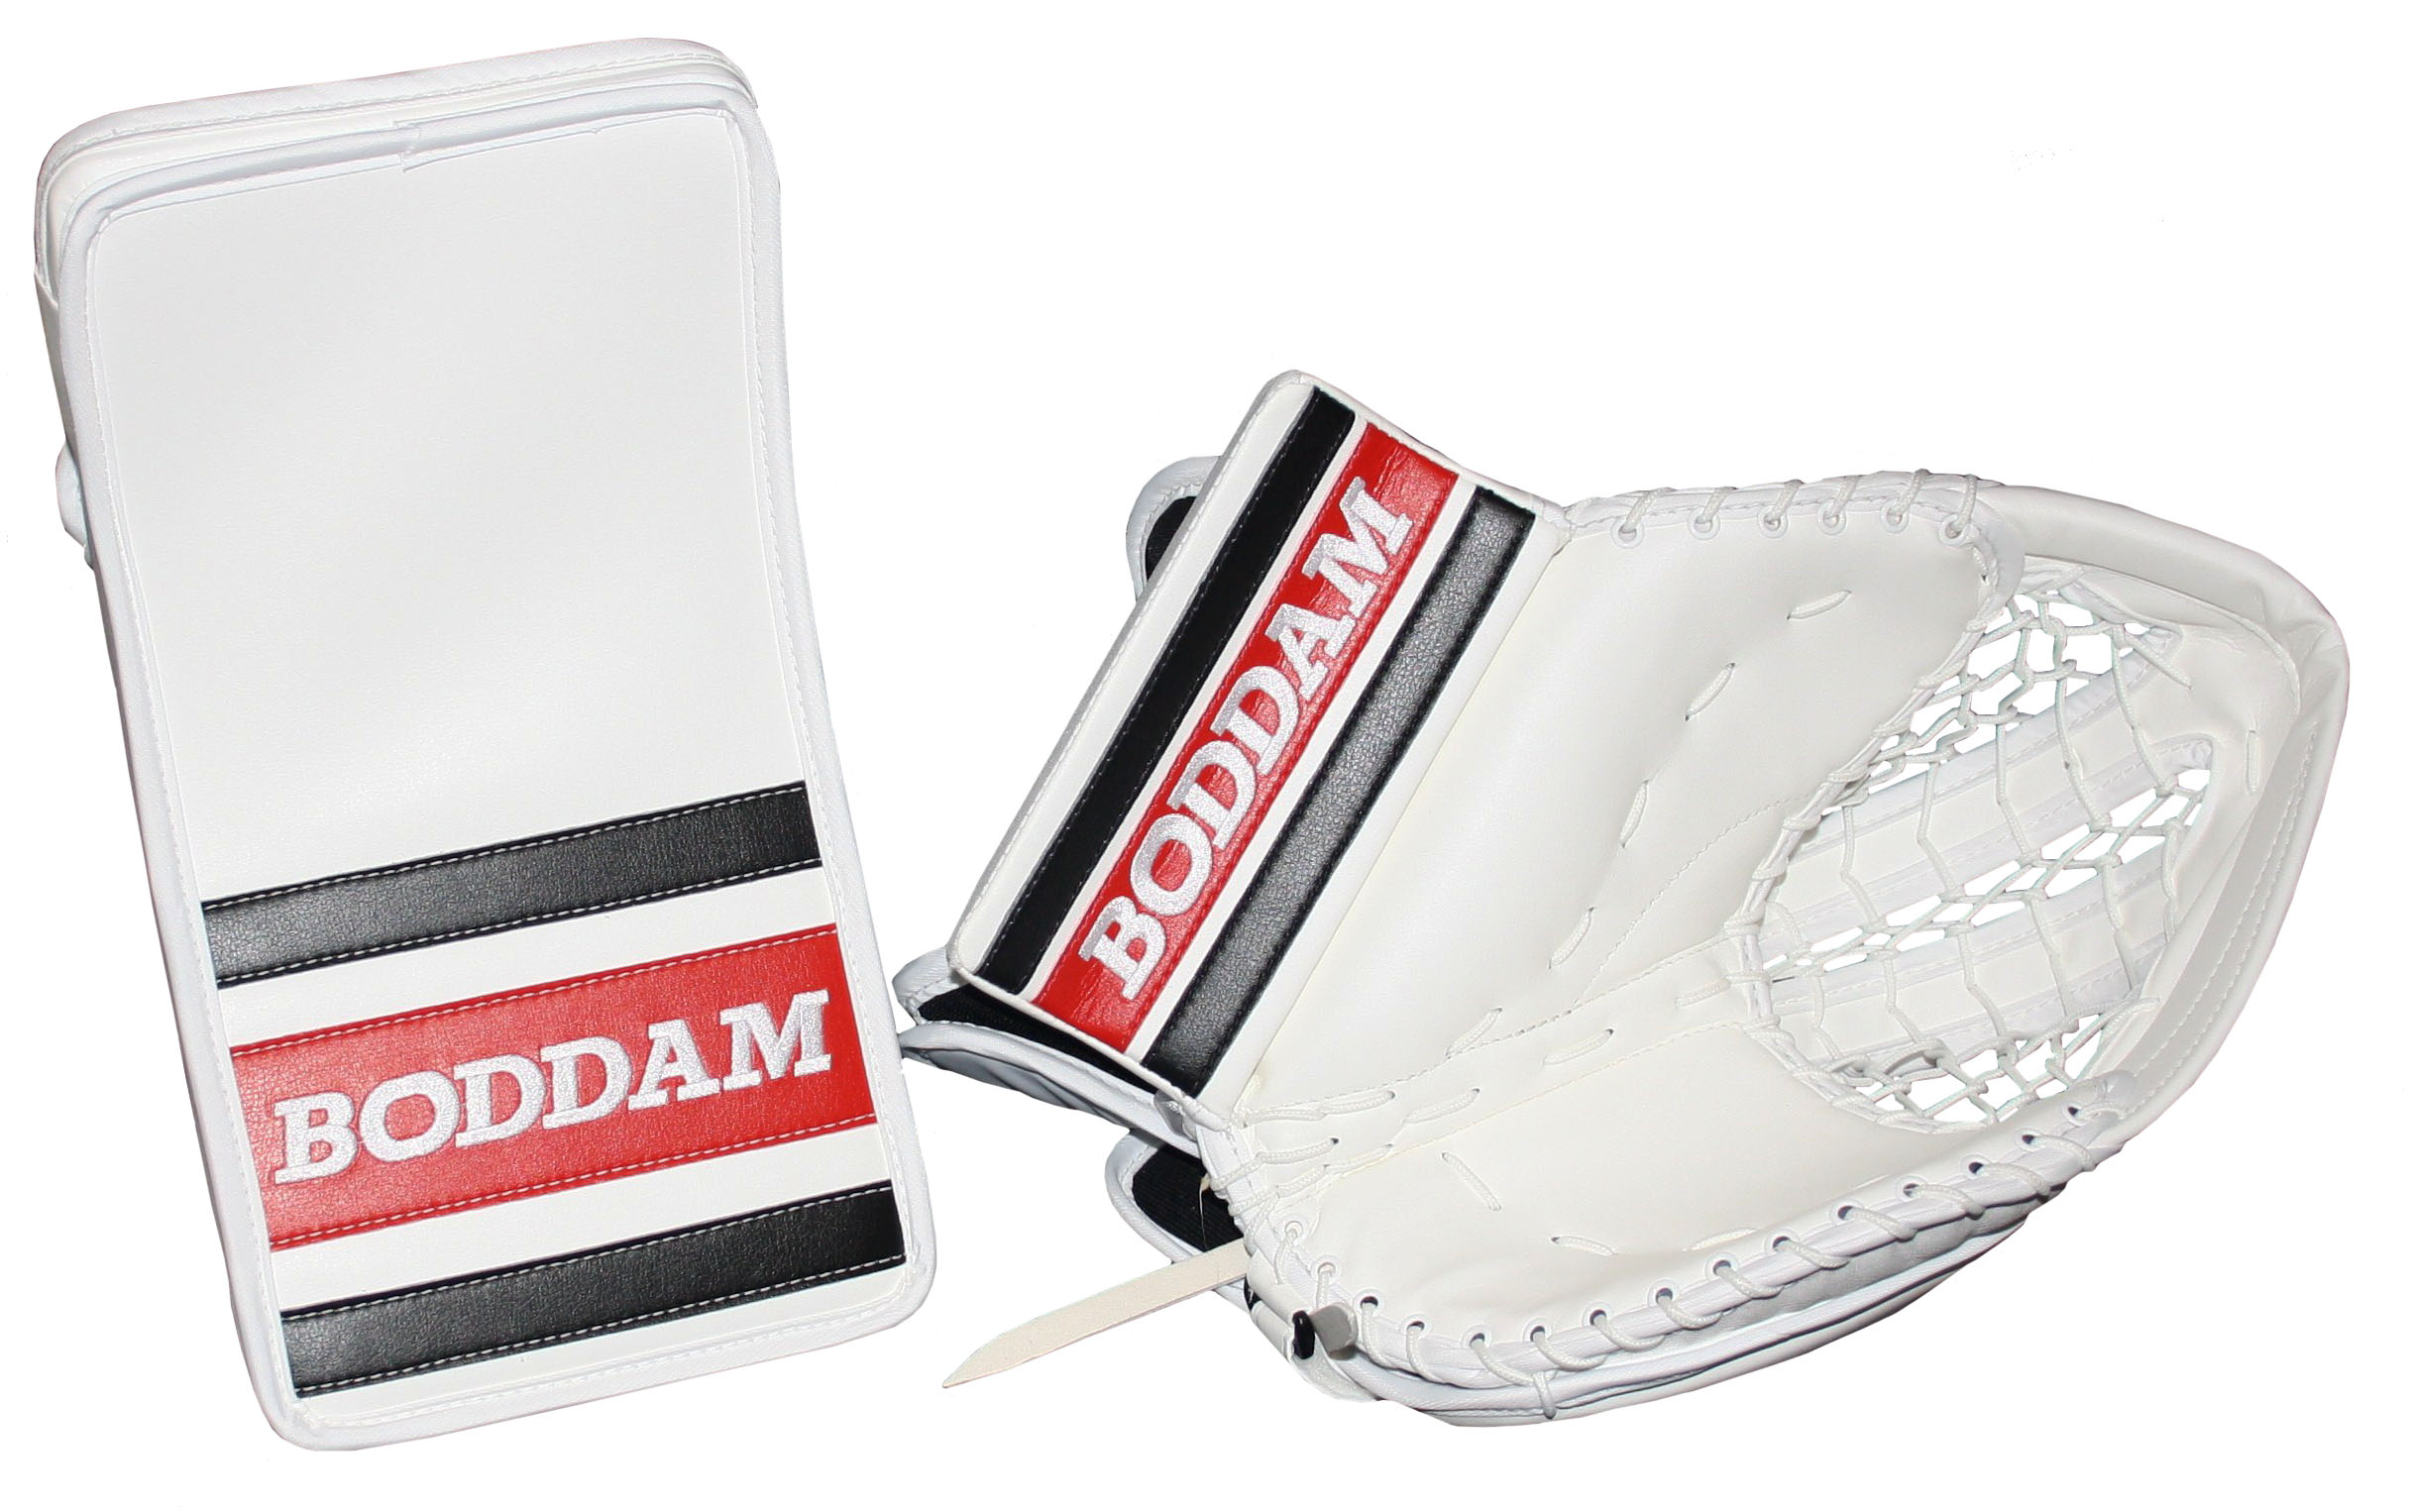 Boddam Glove and Blocker